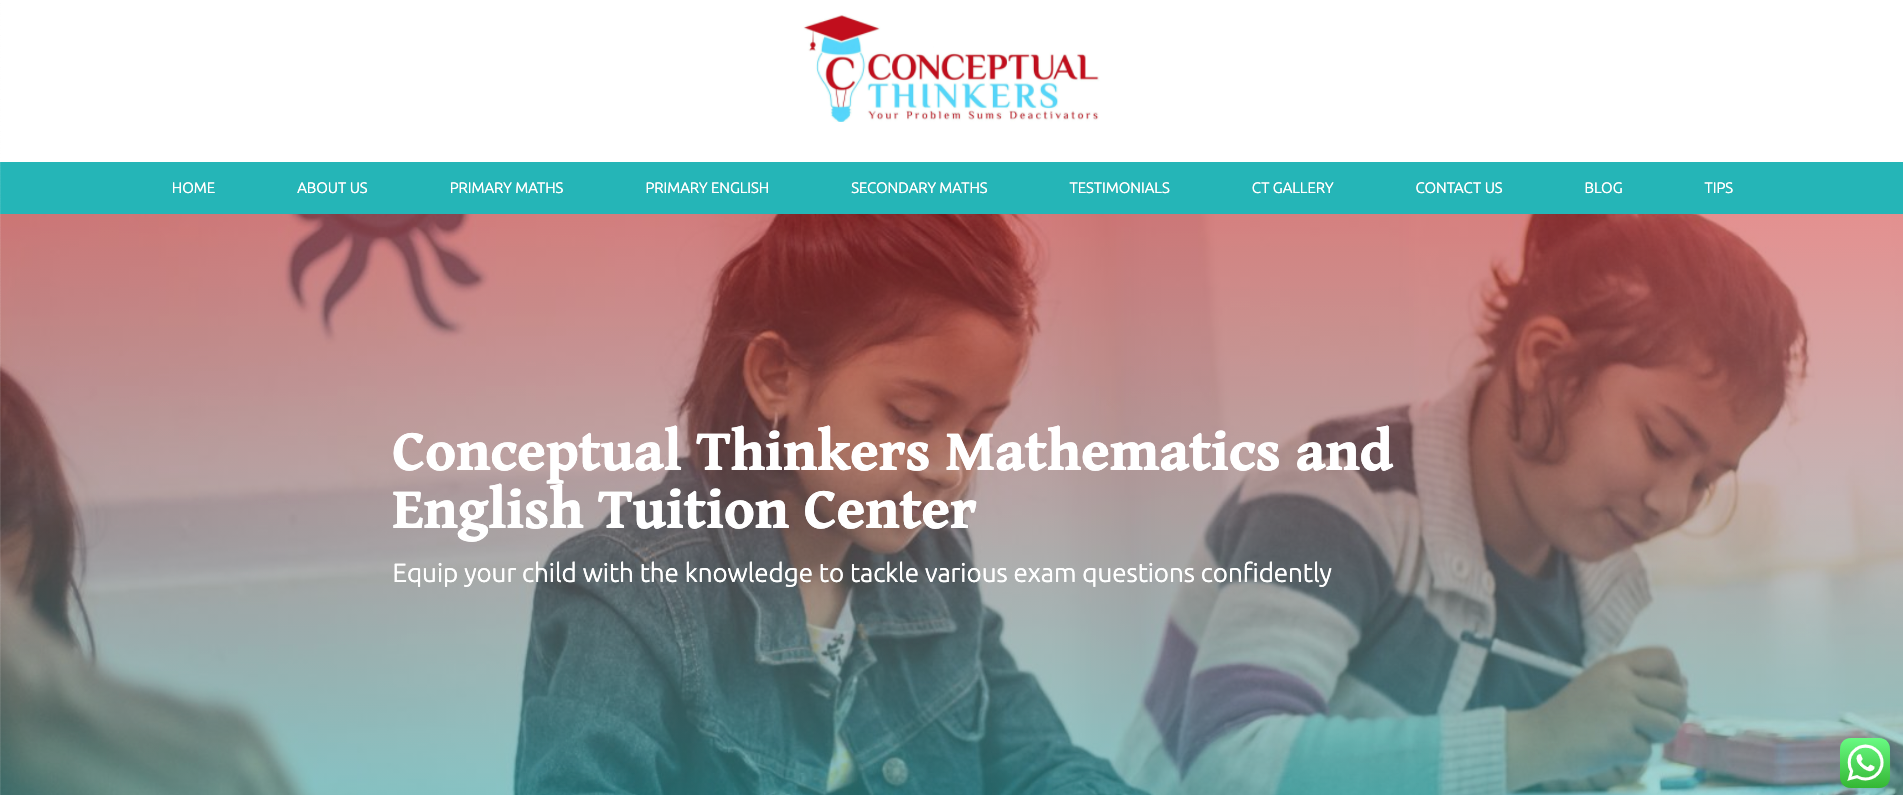 Conceptual Thinkers Primary School Tuition